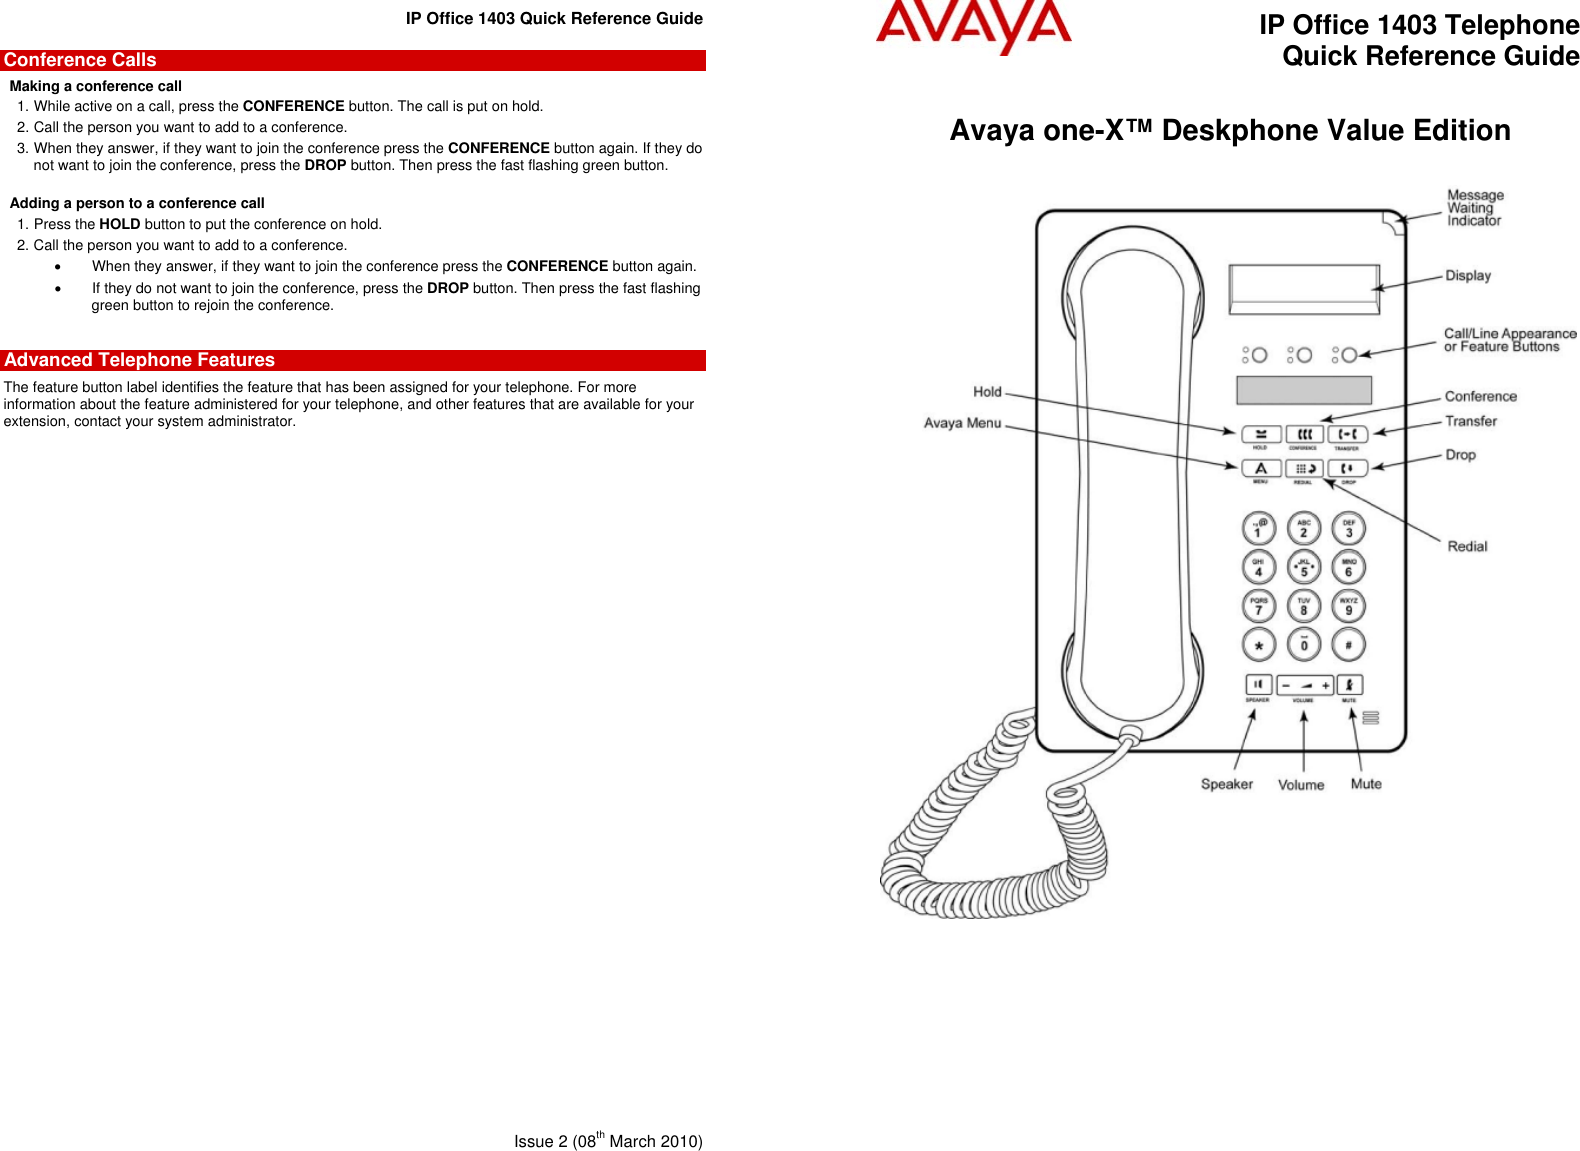 Avaya Ip Office 1403 Quick Reference Guide 1603